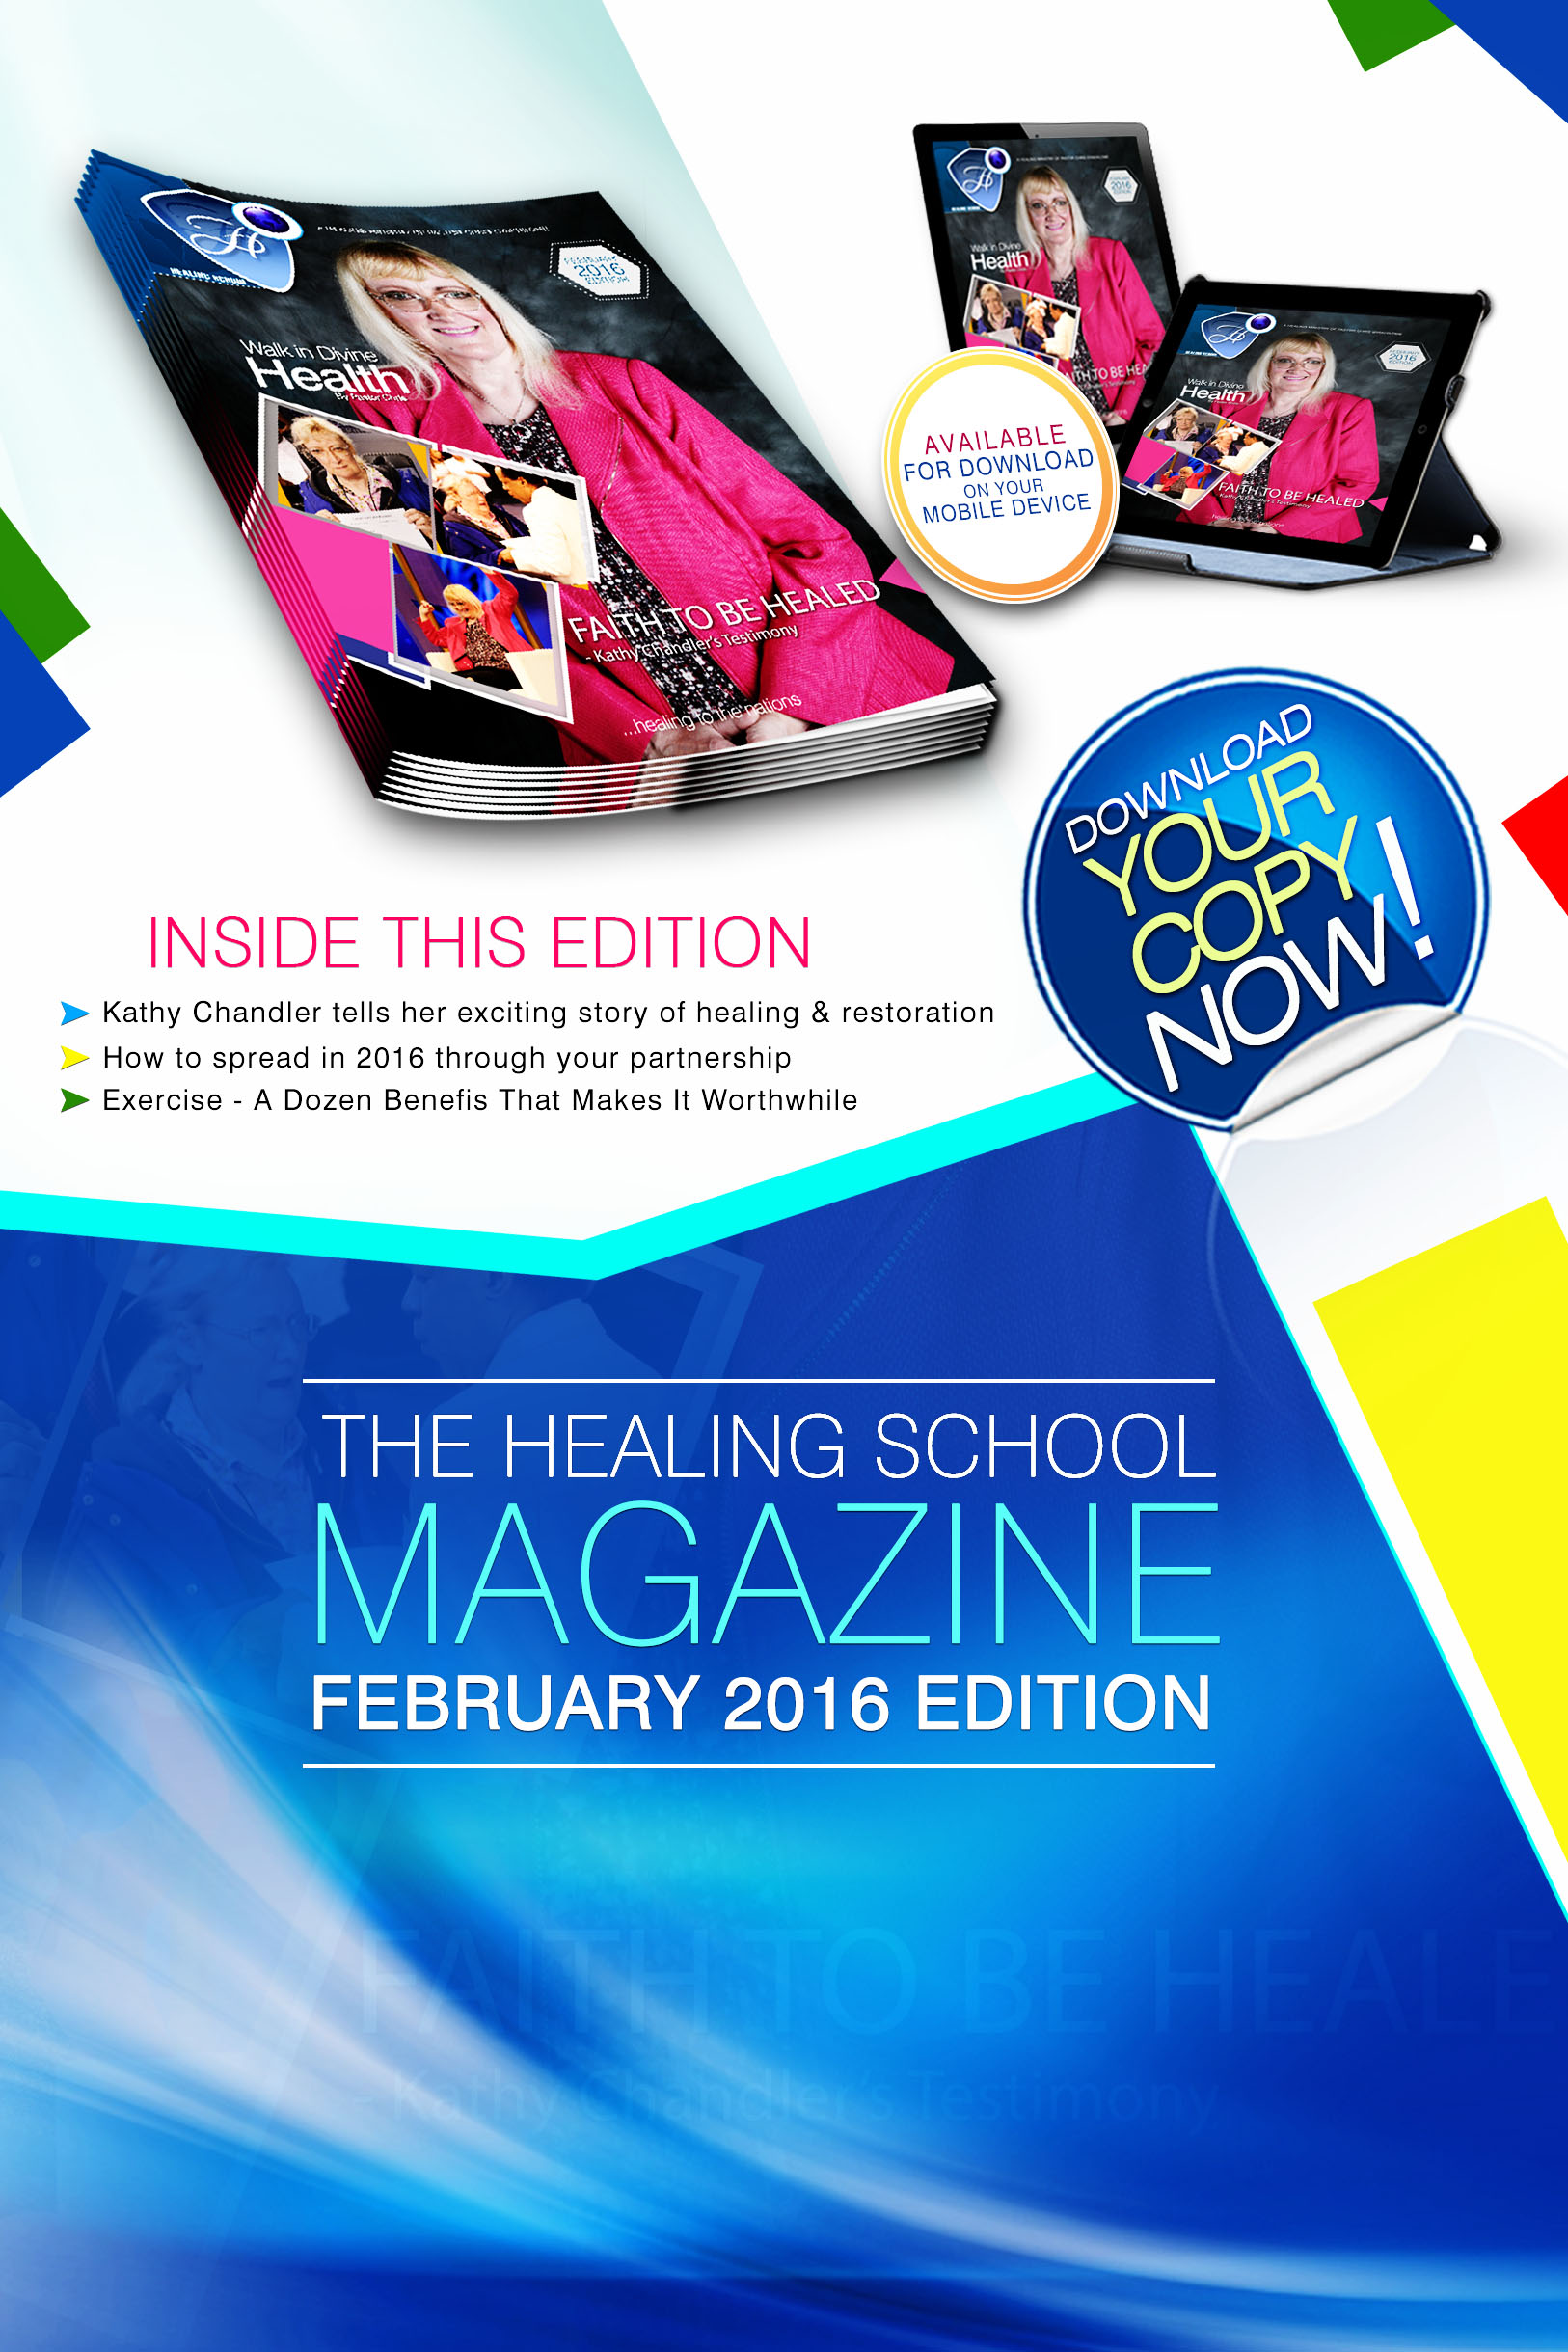 The Healing School Magazine - February 2016 Edition